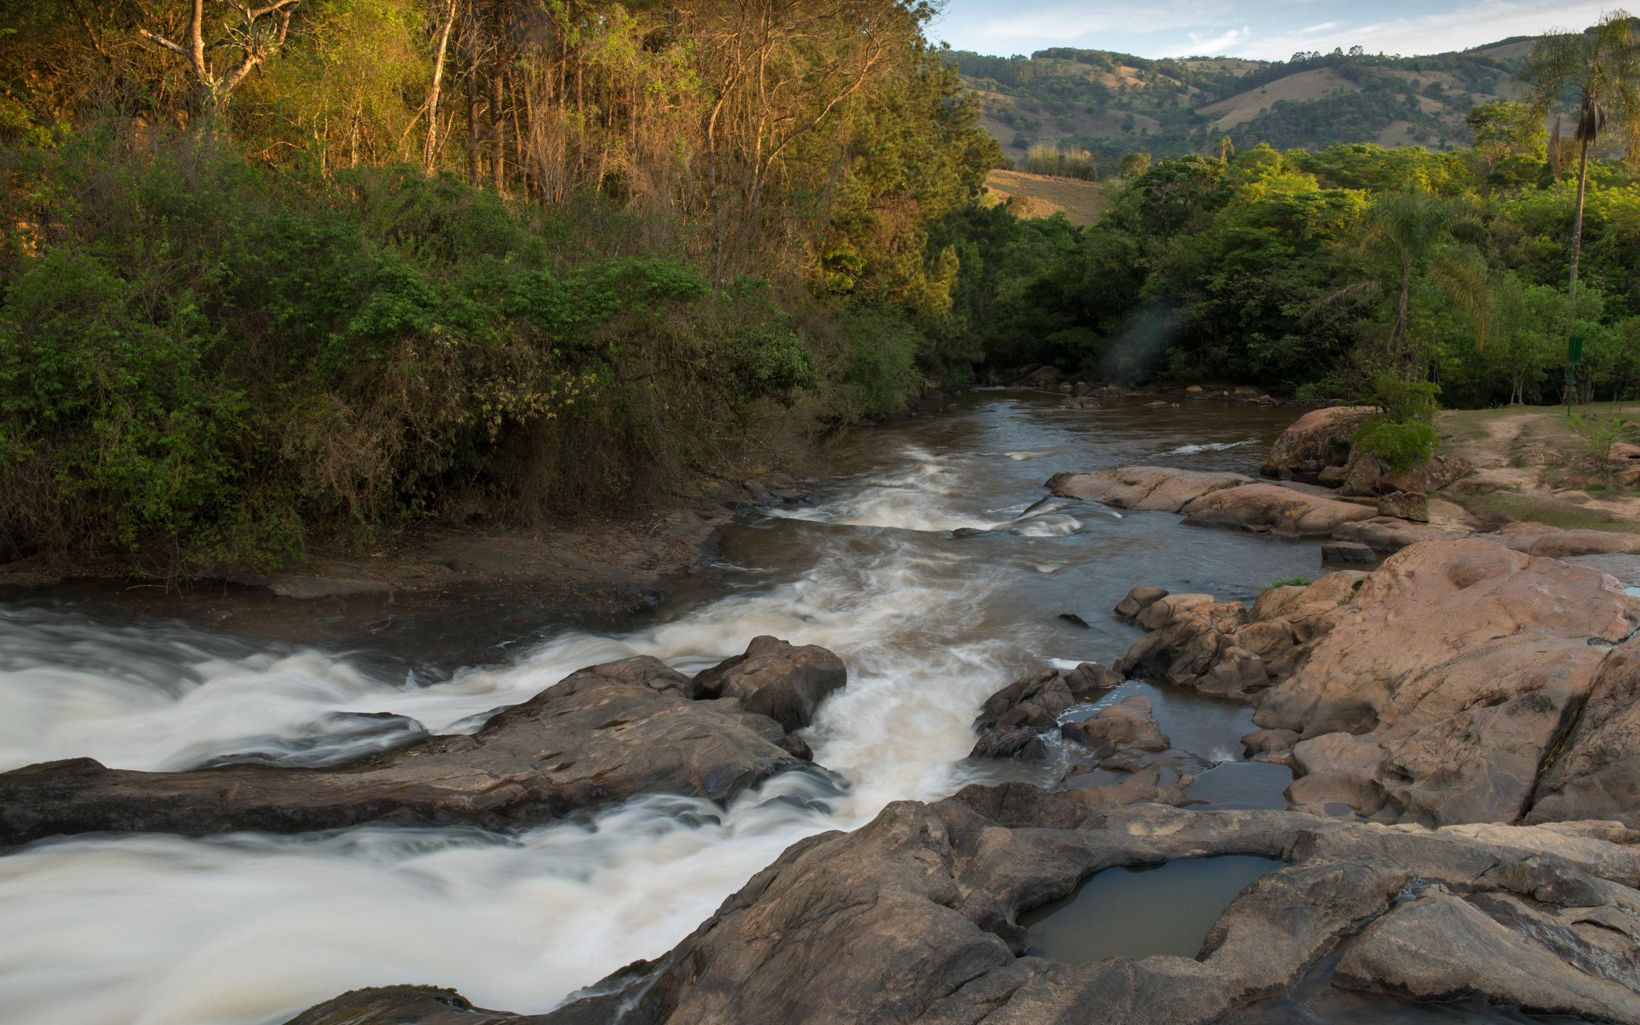 The Jaguari River's Salto Waterfall helps form the Cantareira reservoir system and provides water to more than 9 million people in greater Sao Paulo, Brazil.